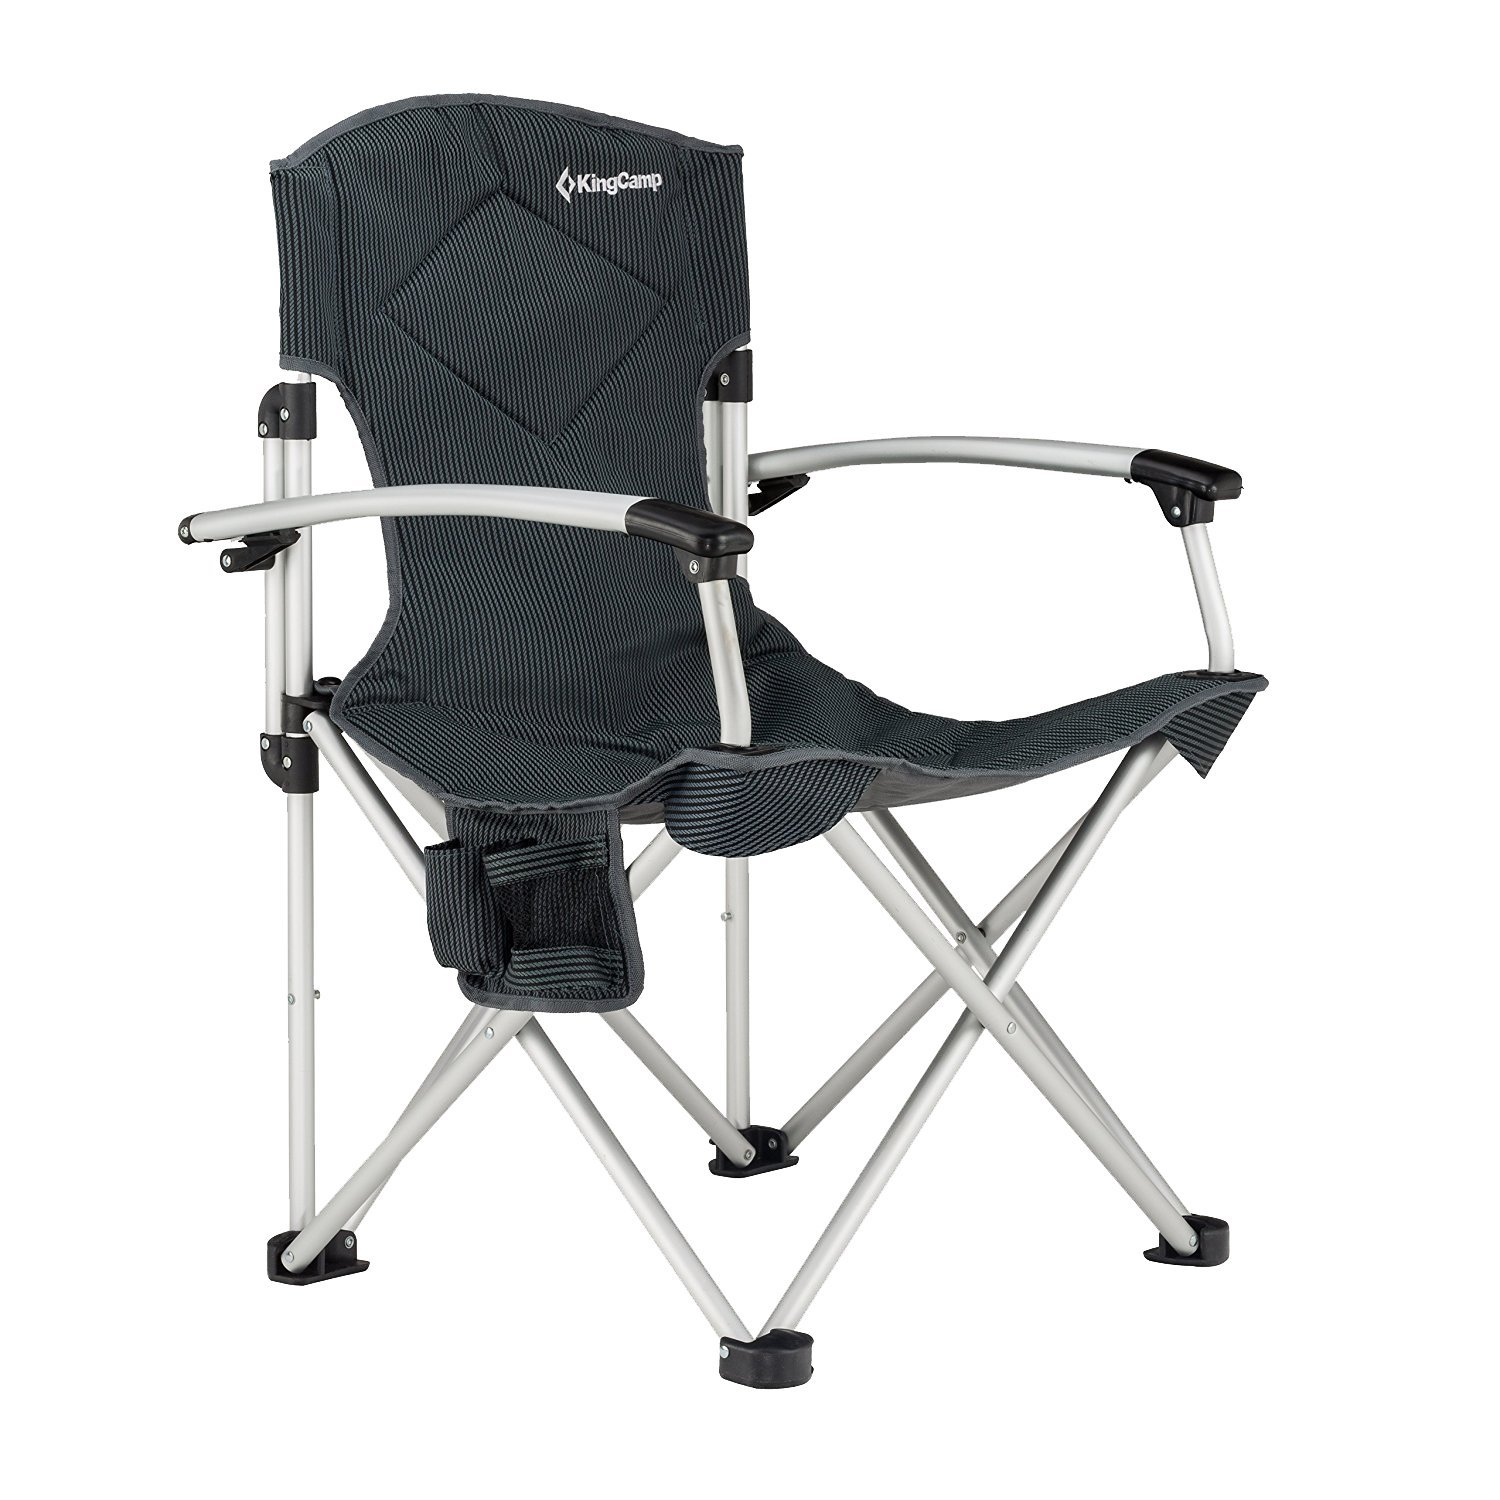 baby camp chair desk in kitchen kingcamp aluminum portable heavy duty folding camping with comfortable smooth armrest carry bag walmart com